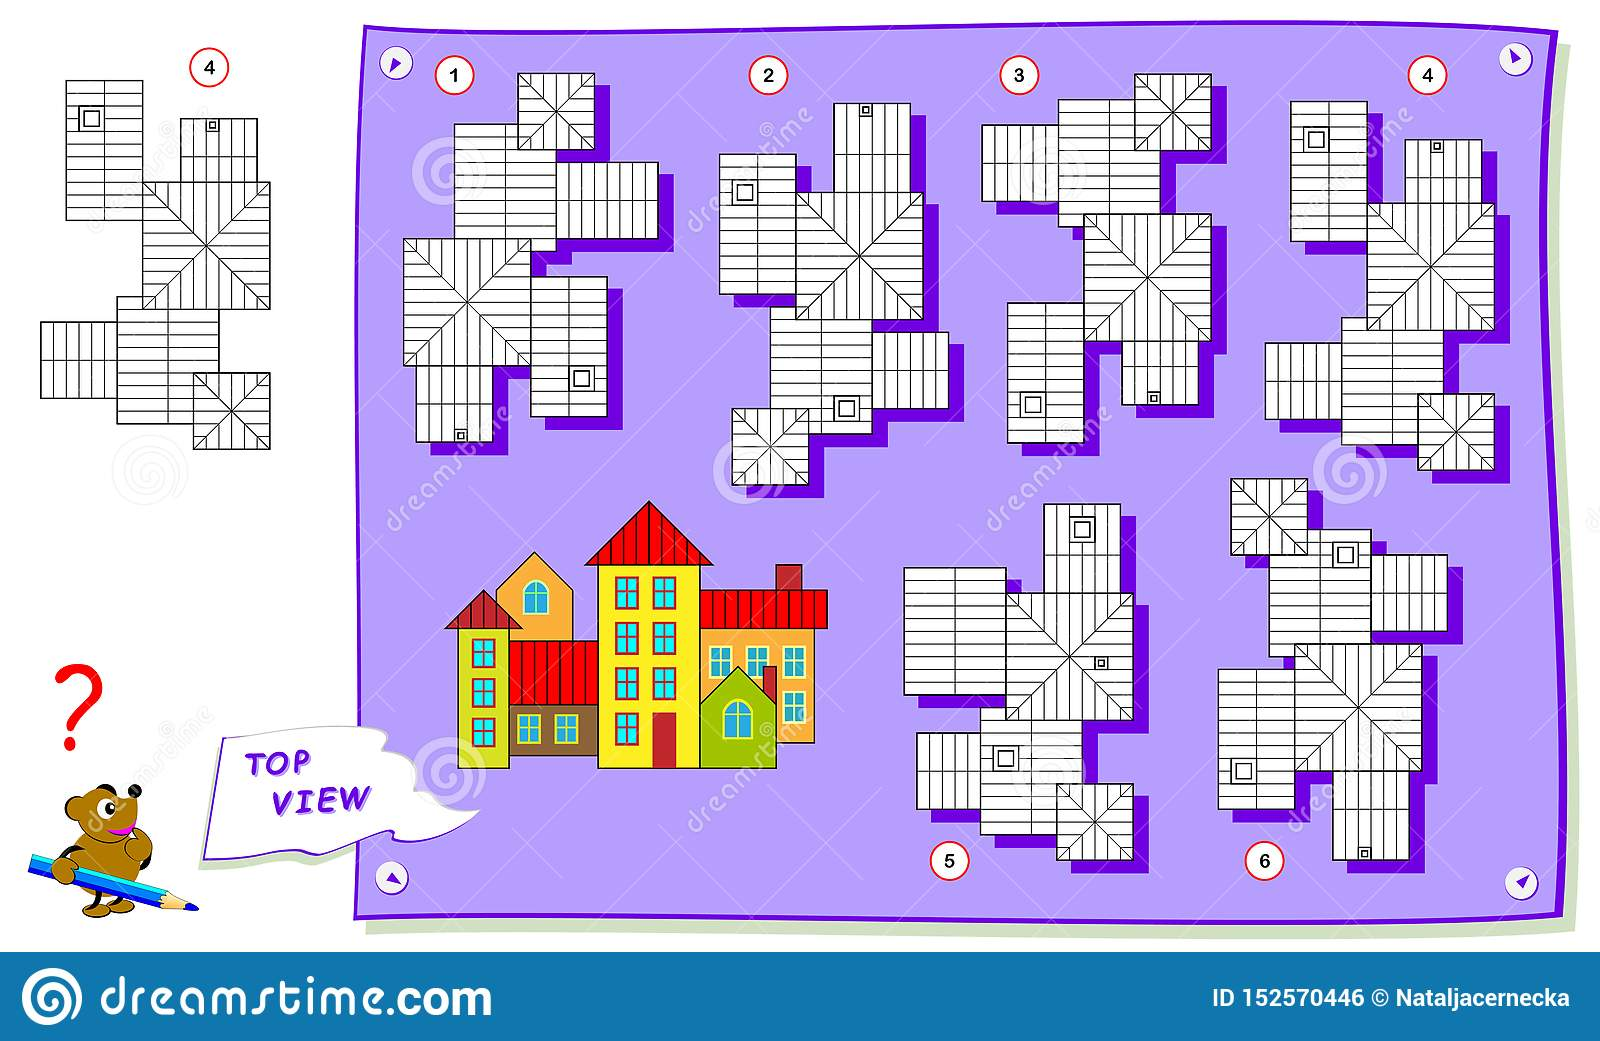 Logic Puzzle Game For Kids Need To Find Correct Top View